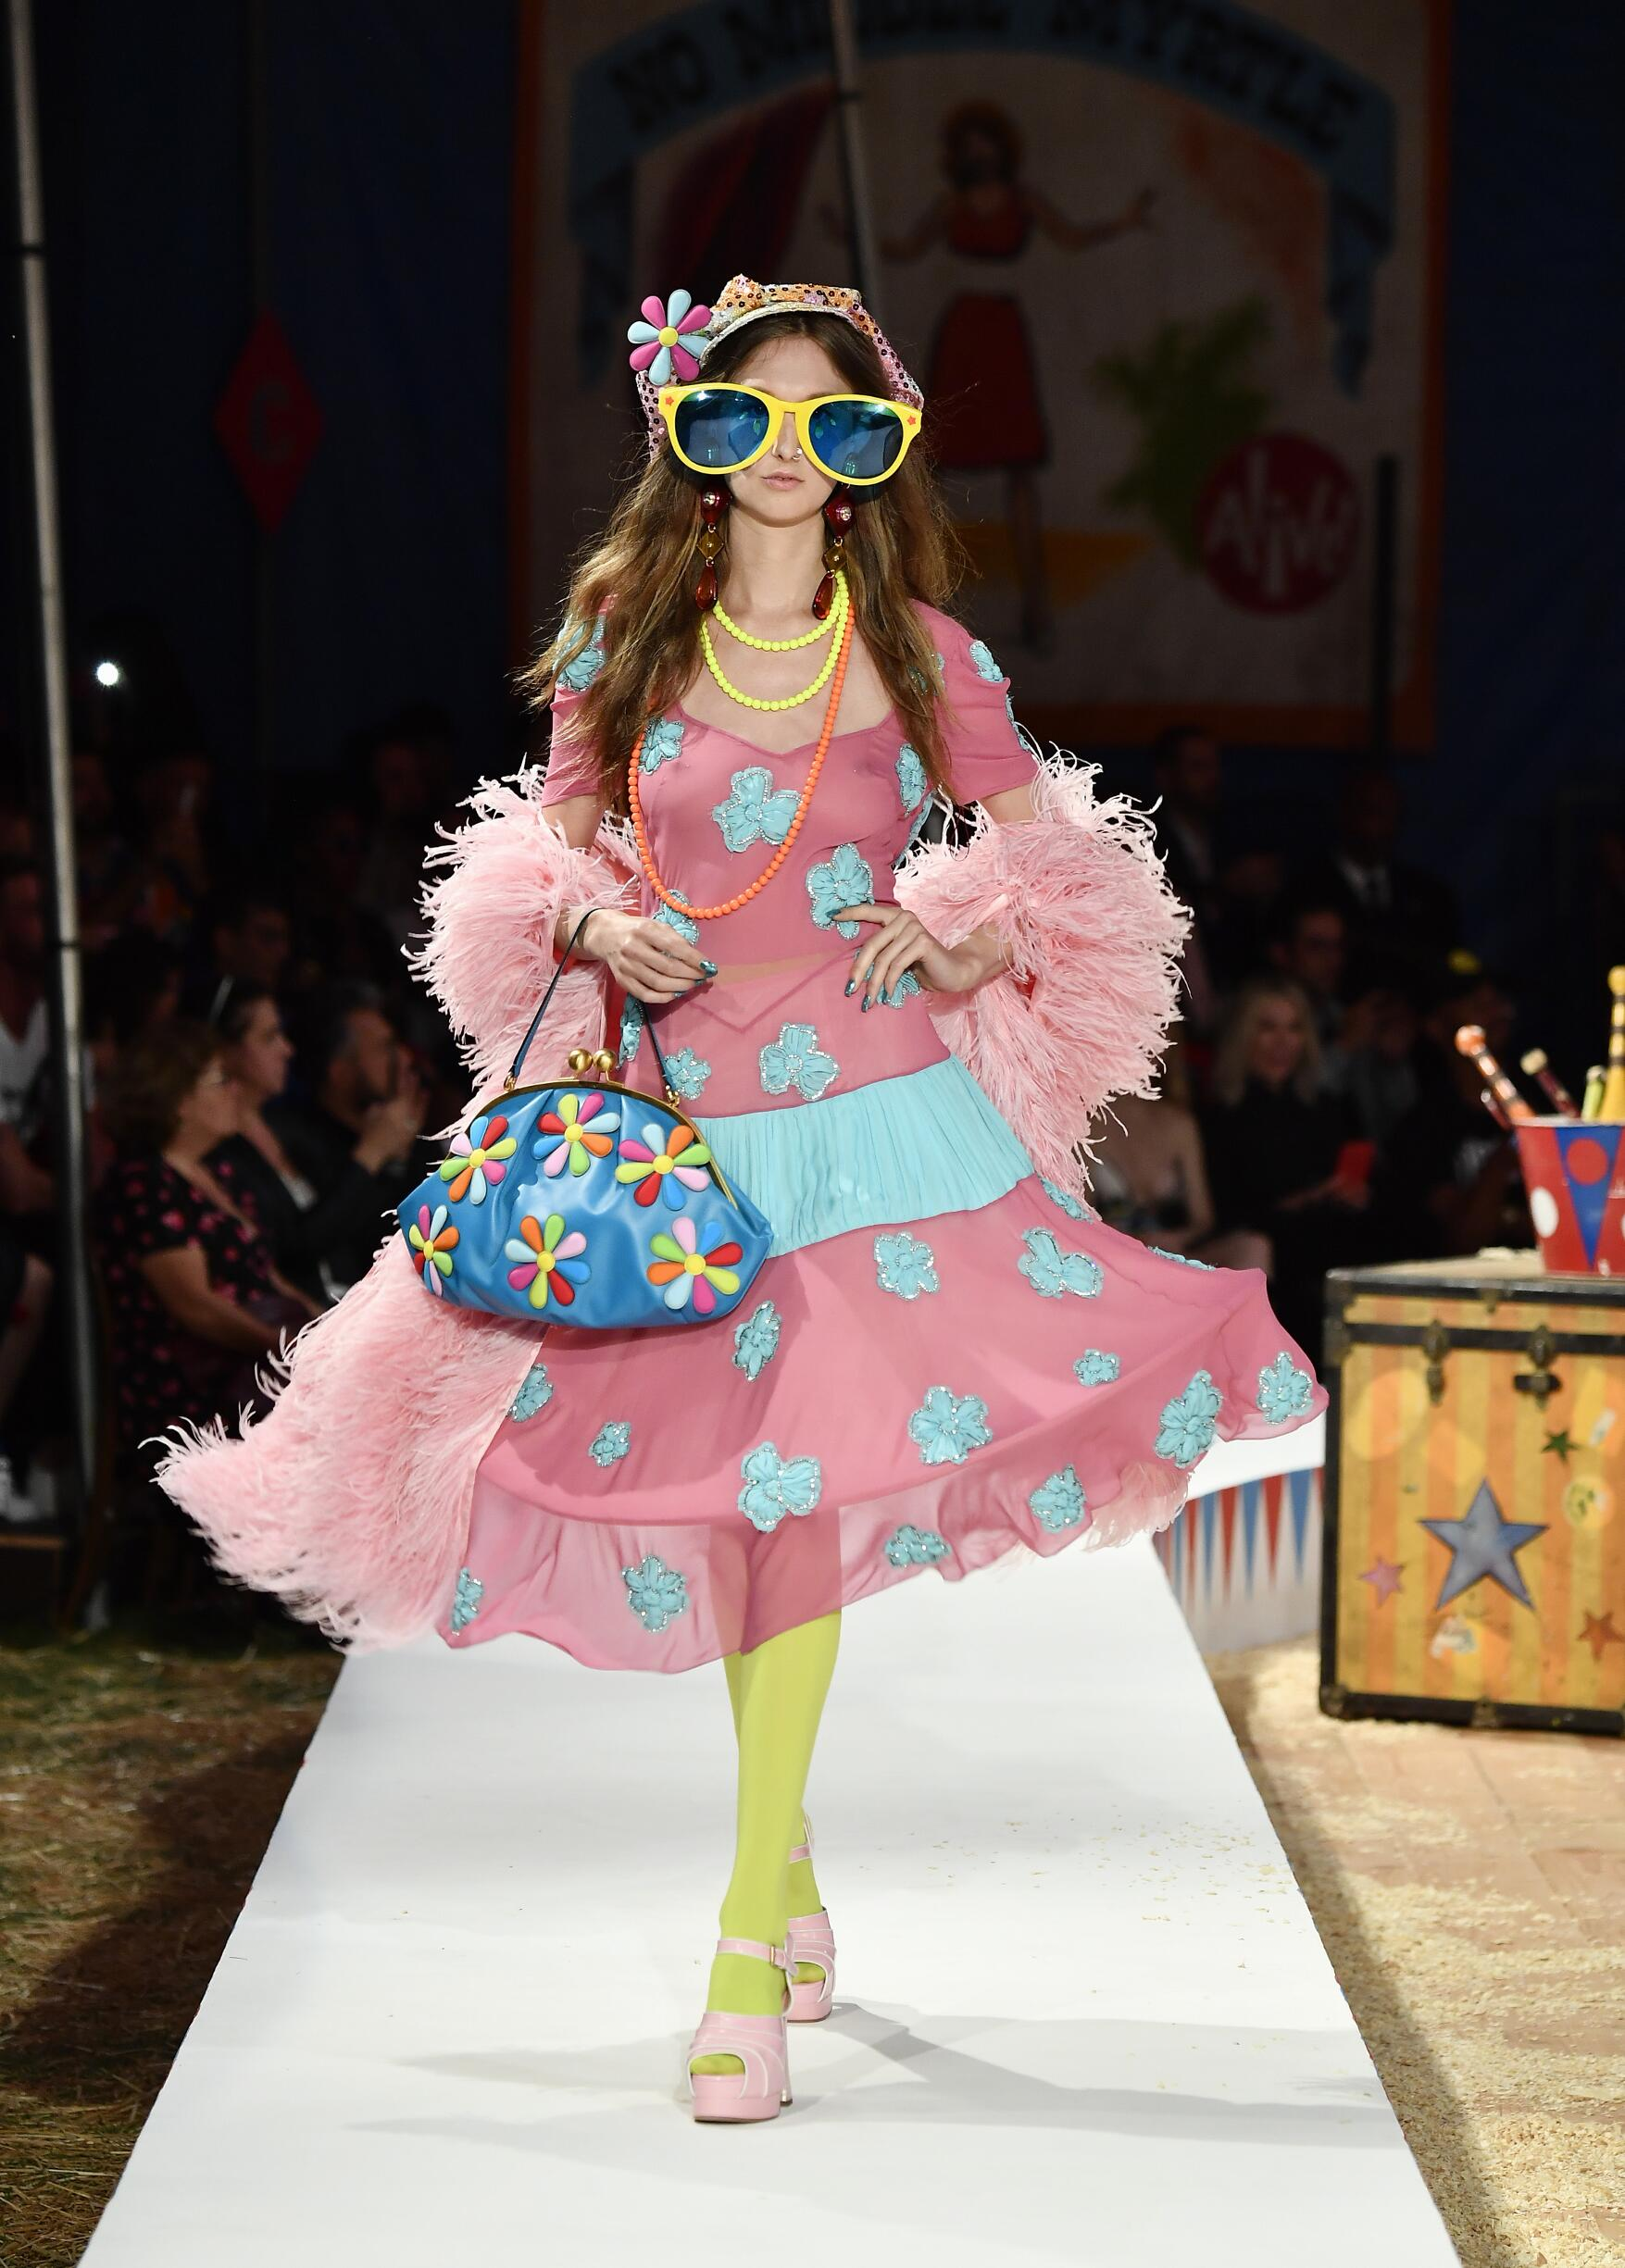 Moschino Spring Summer 2019 Menswear and Women's Resort Collection Look 8 Los Angeles